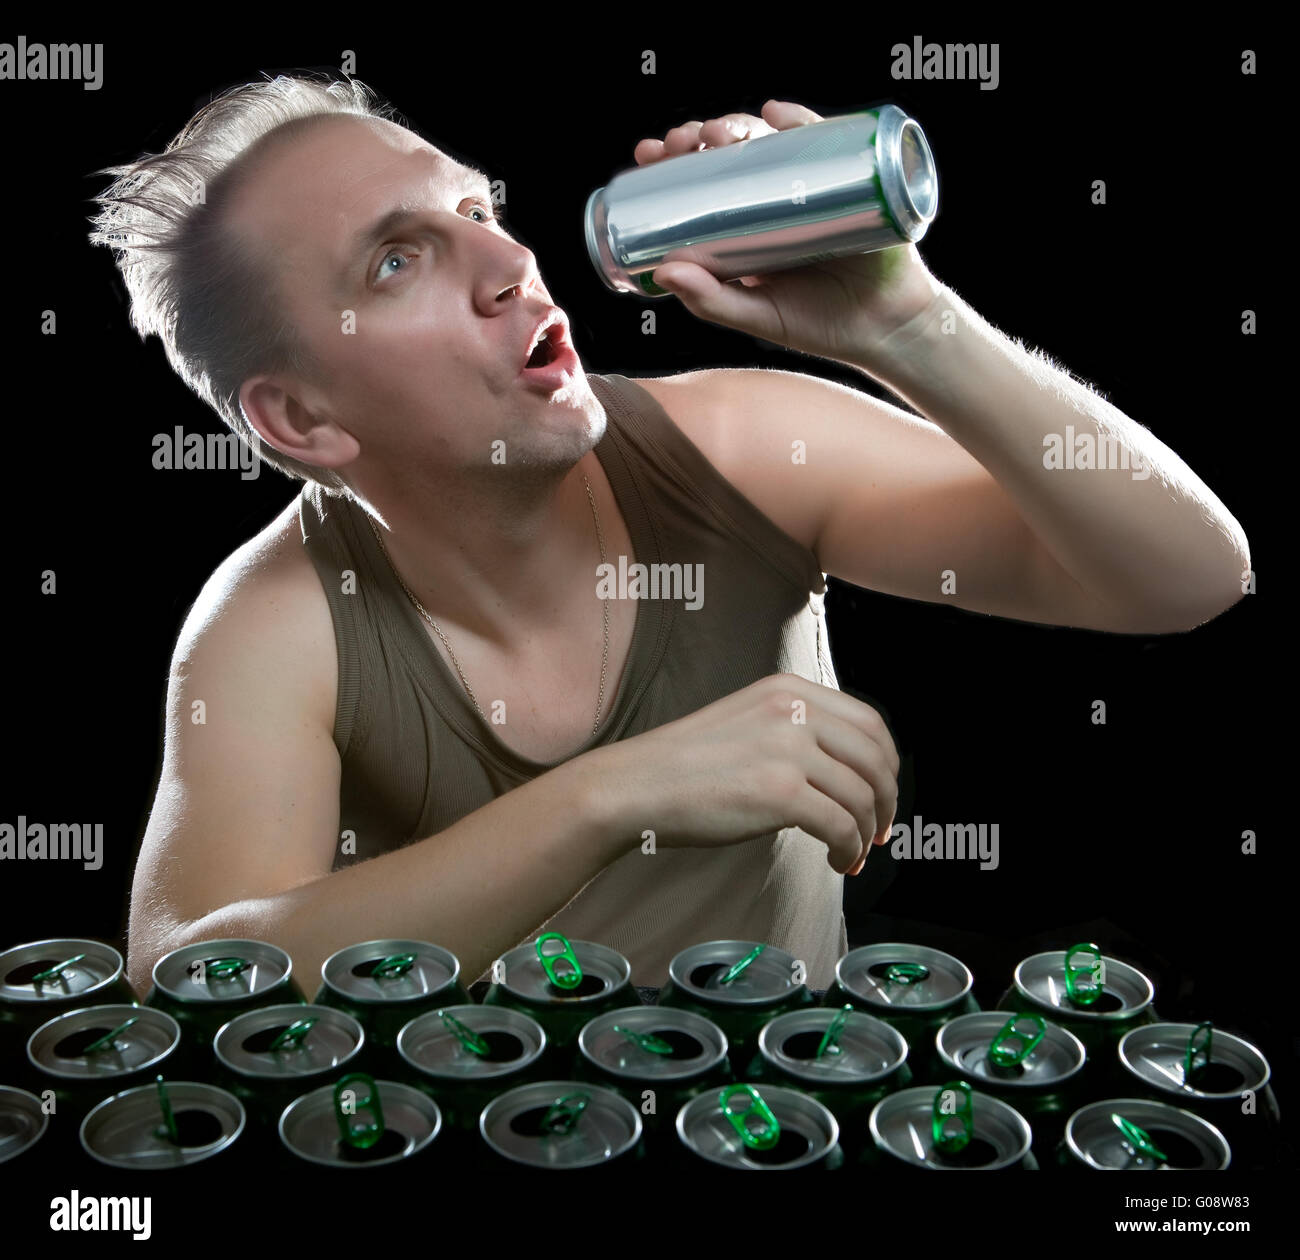 The man wants to drink the last drink of beer - Stock Image